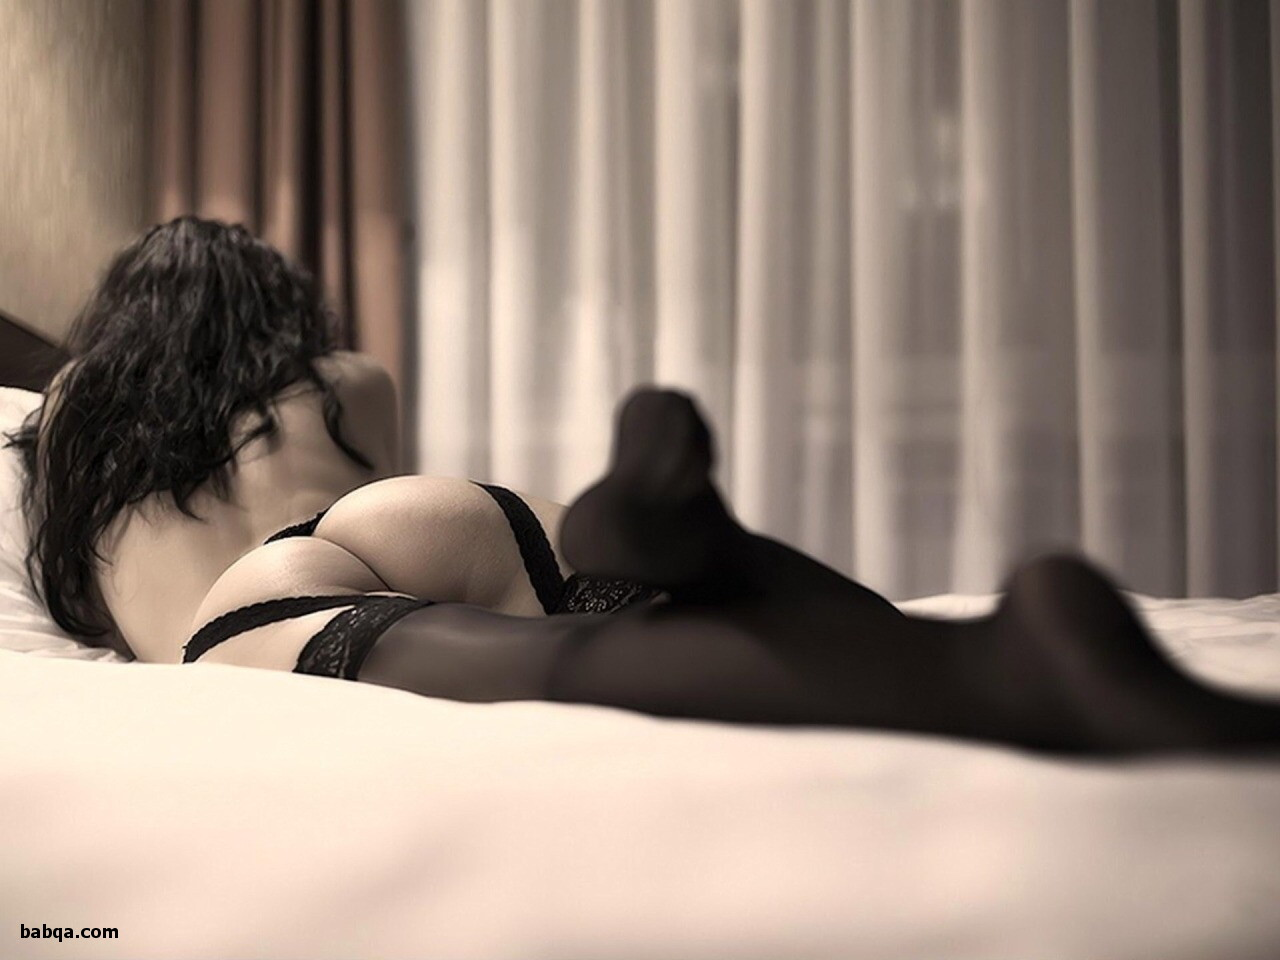 garter belts and stocking and best lingerie in the world